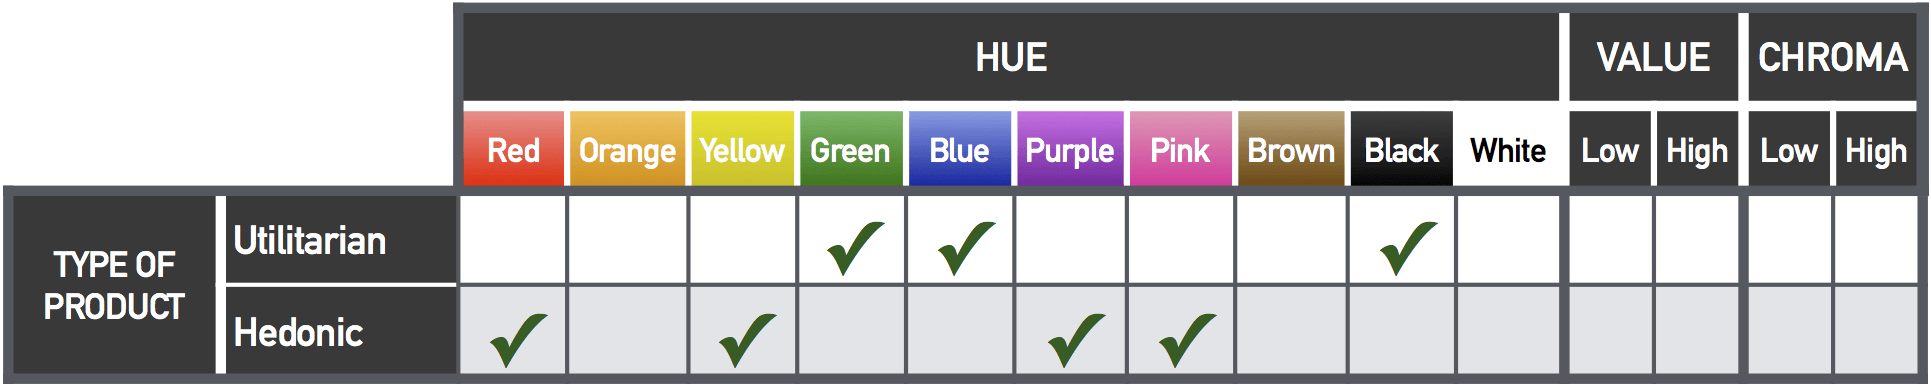 Best Colors for Types of Products